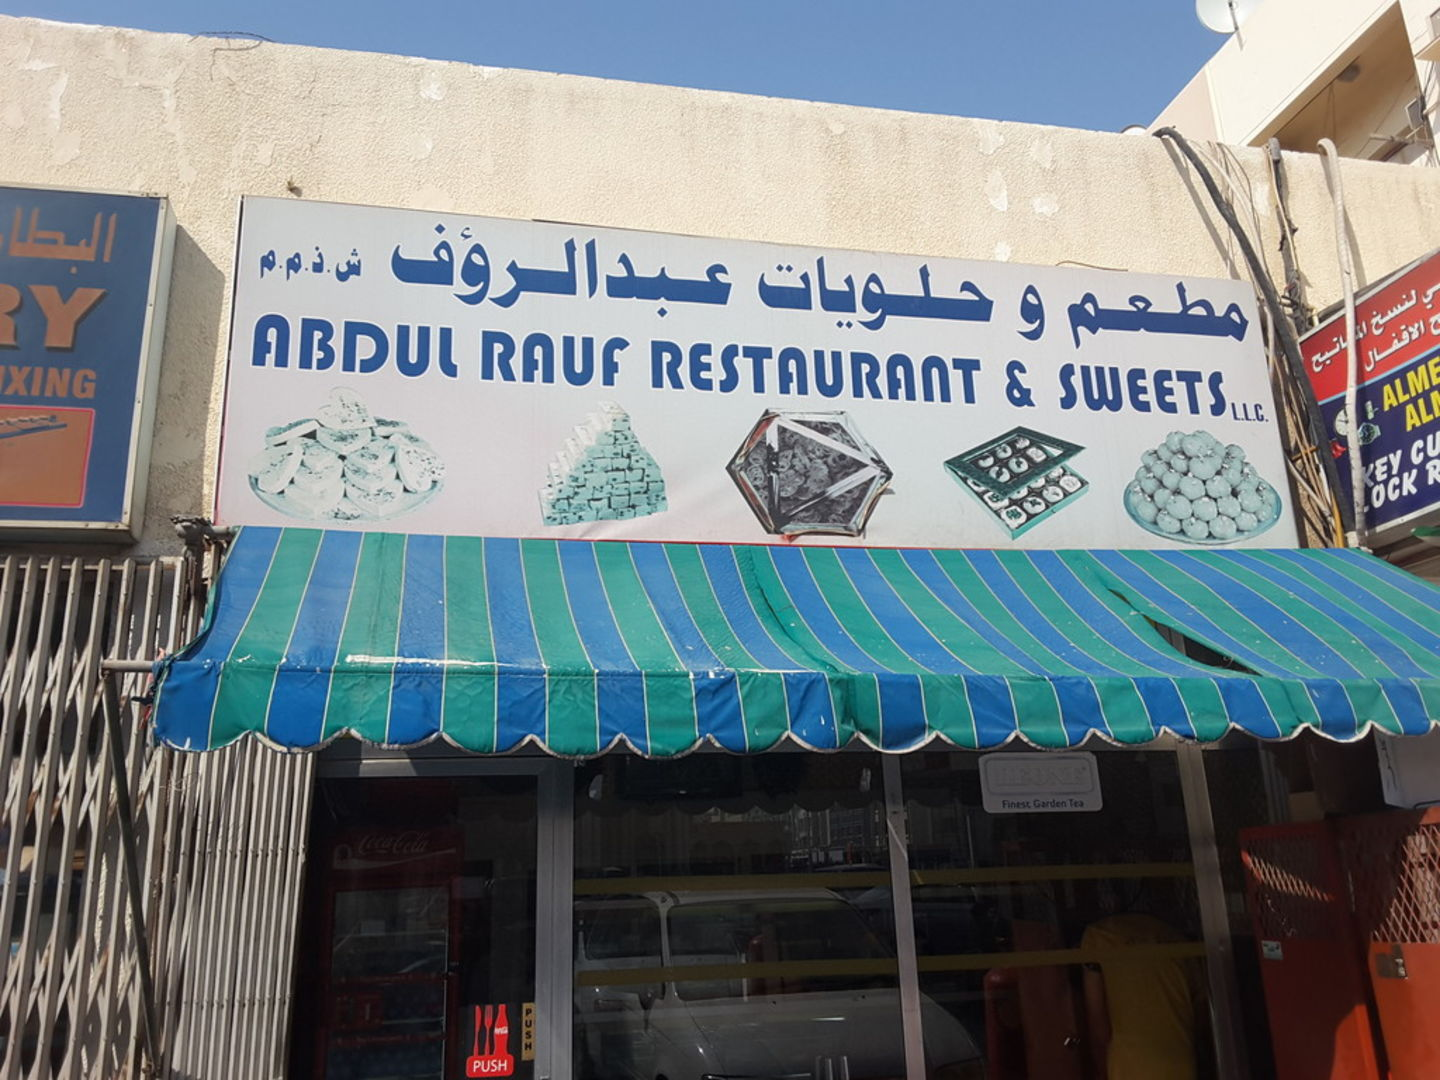 HiDubai-business-abdul-rauf-resturant-sweets-food-beverage-bakeries-desserts-sweets-al-satwa-dubai-2